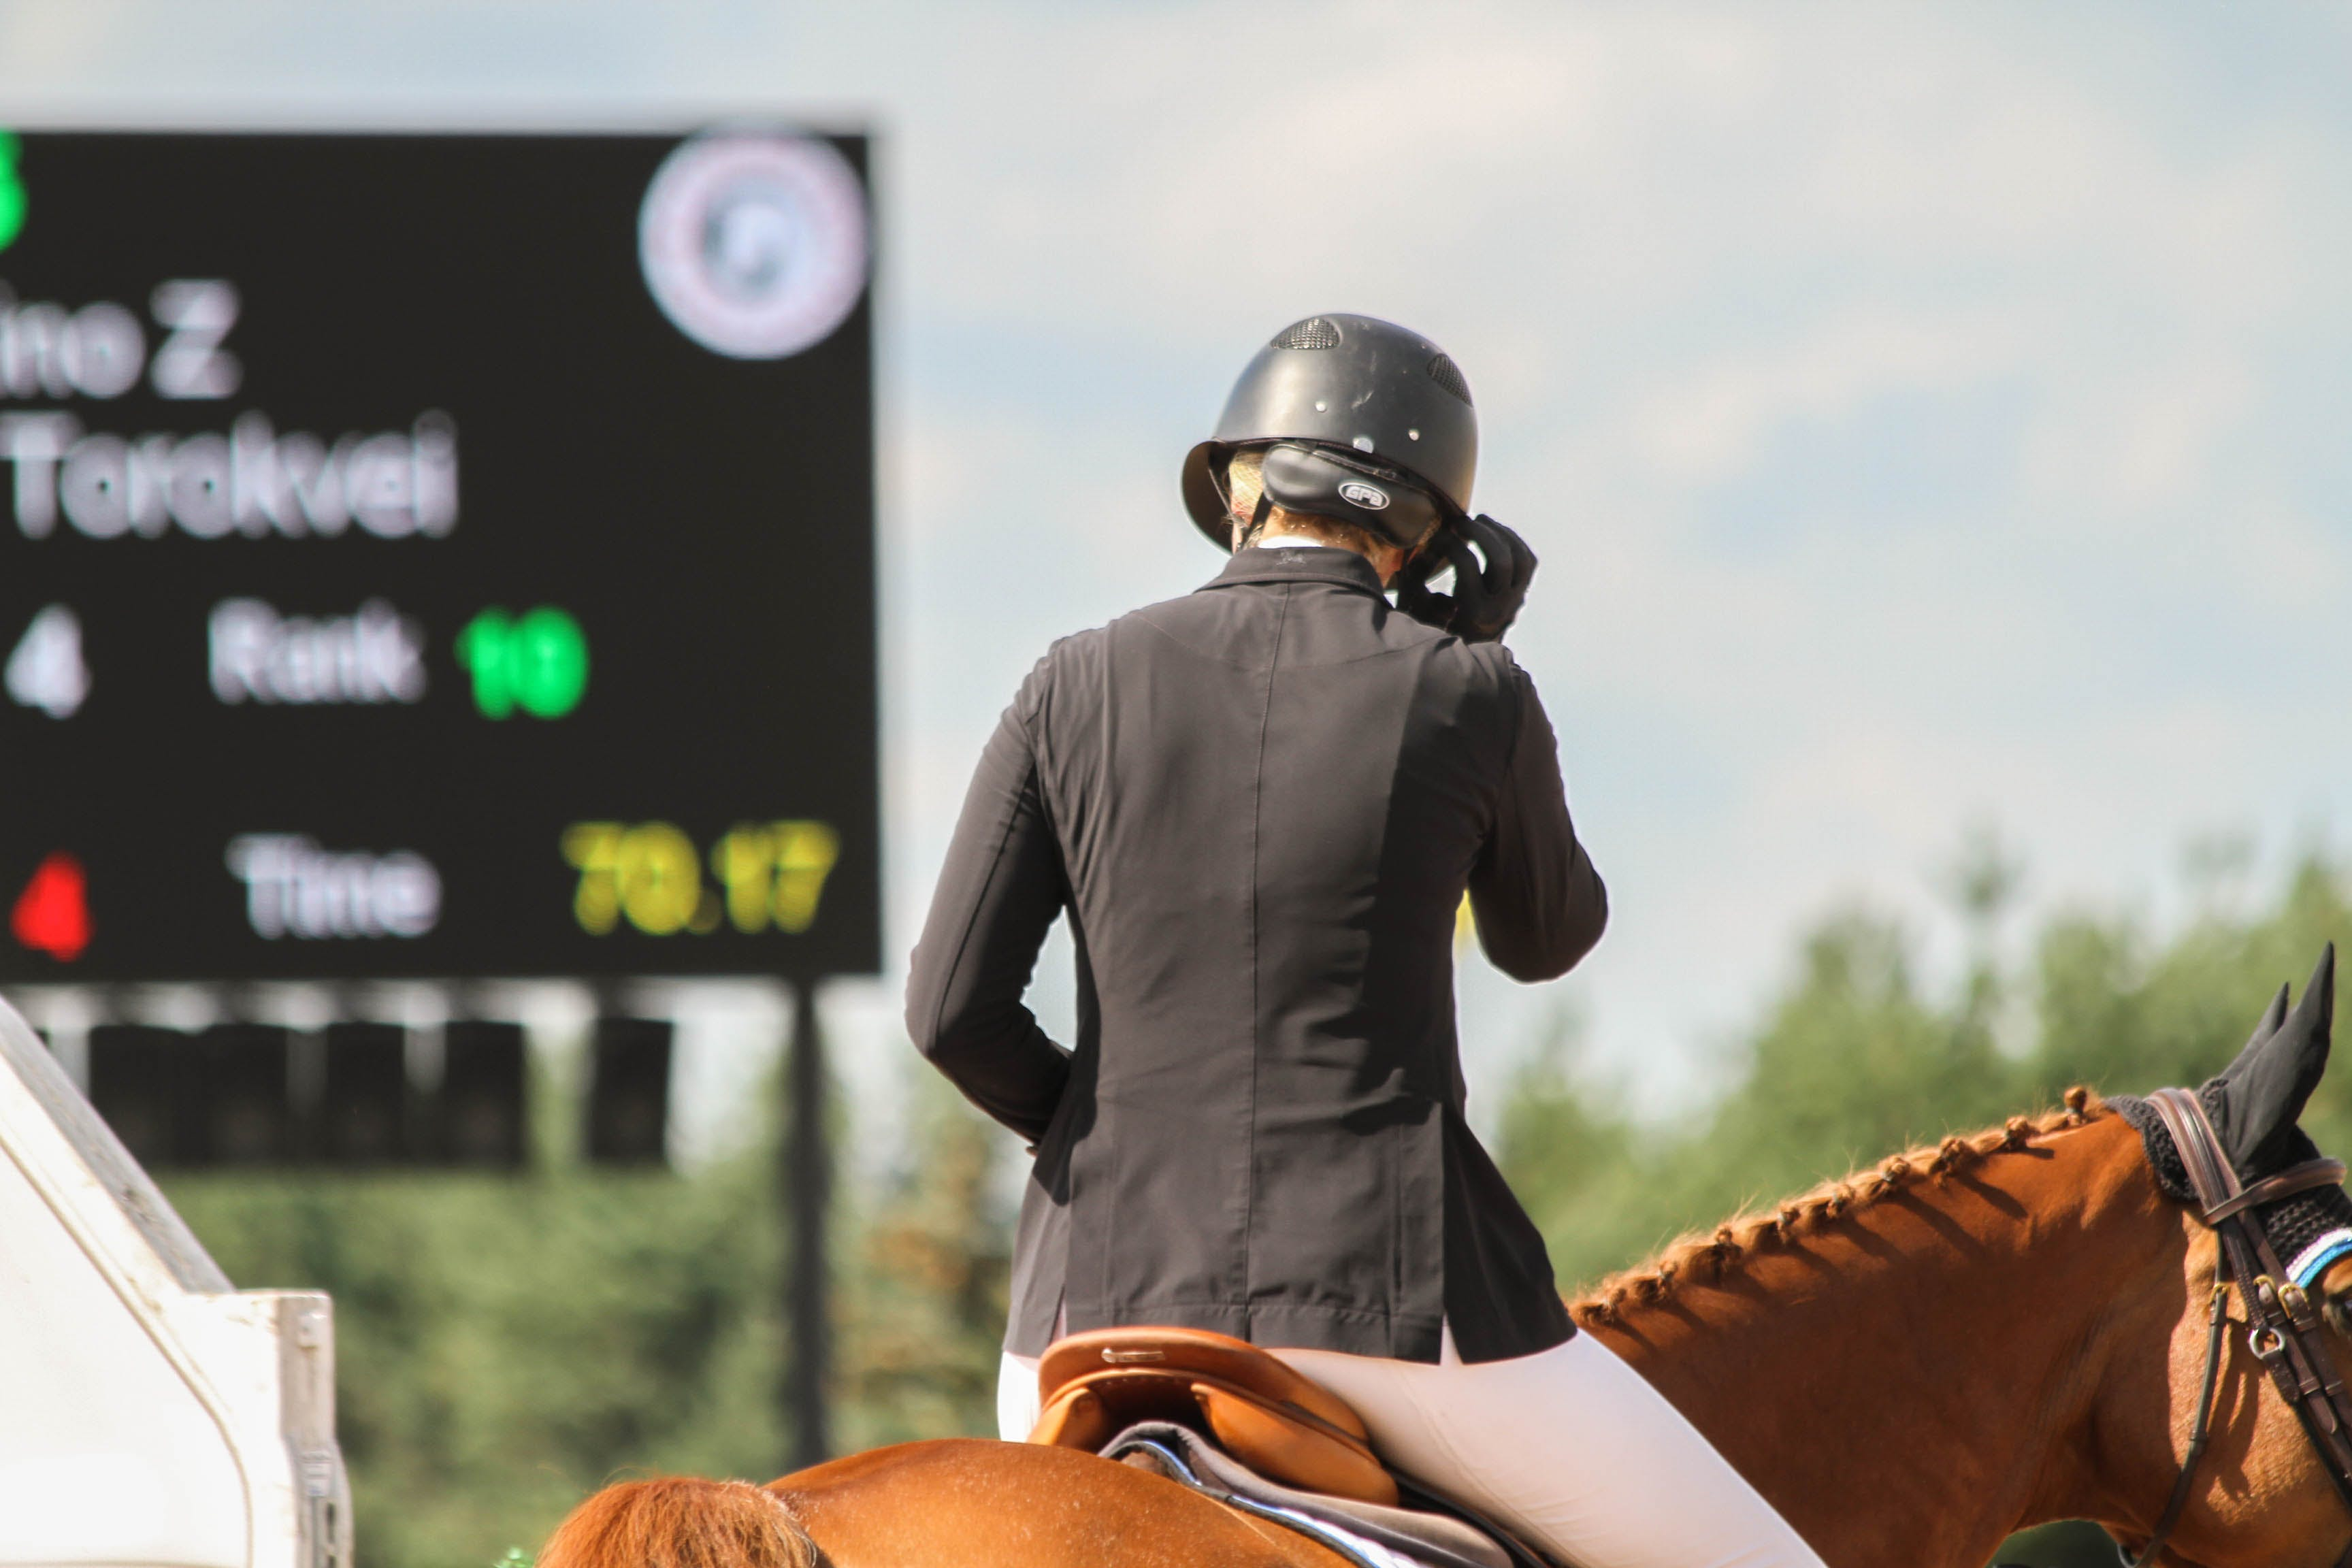 Person in Black Helmet and Black Top Riding Horse